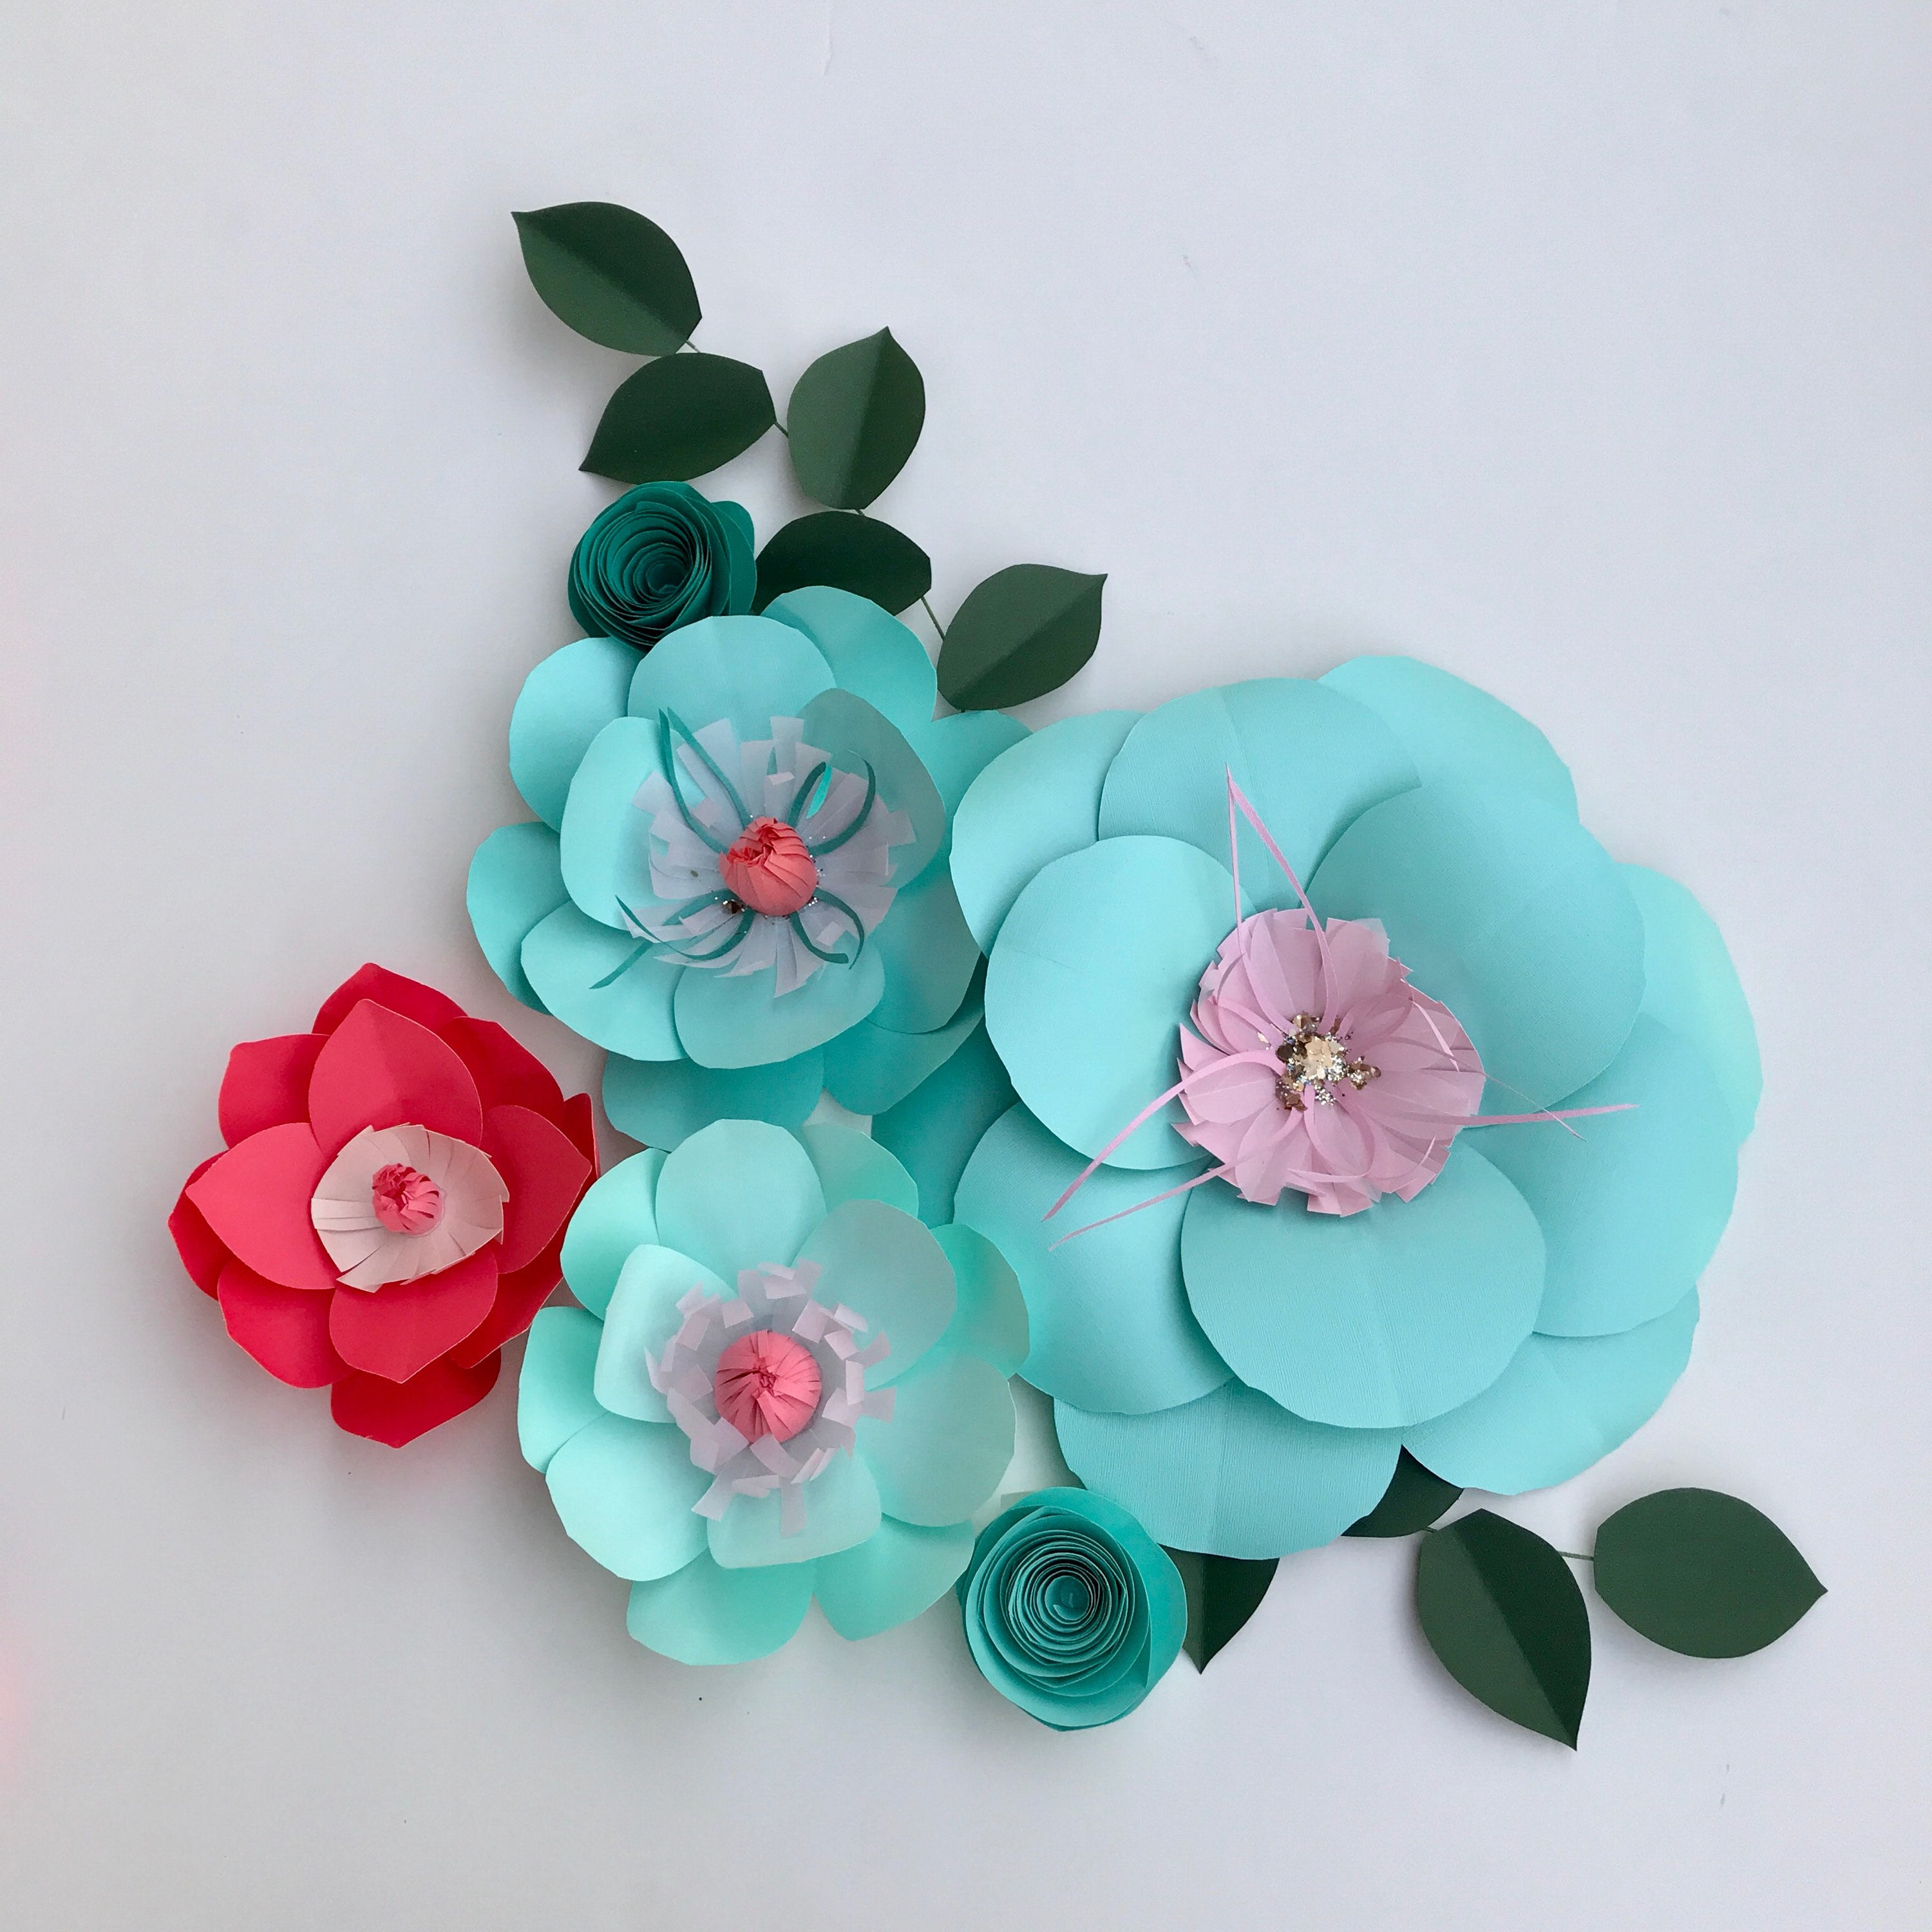 Turquoise wedding color motif coral wall decor large paper flowers